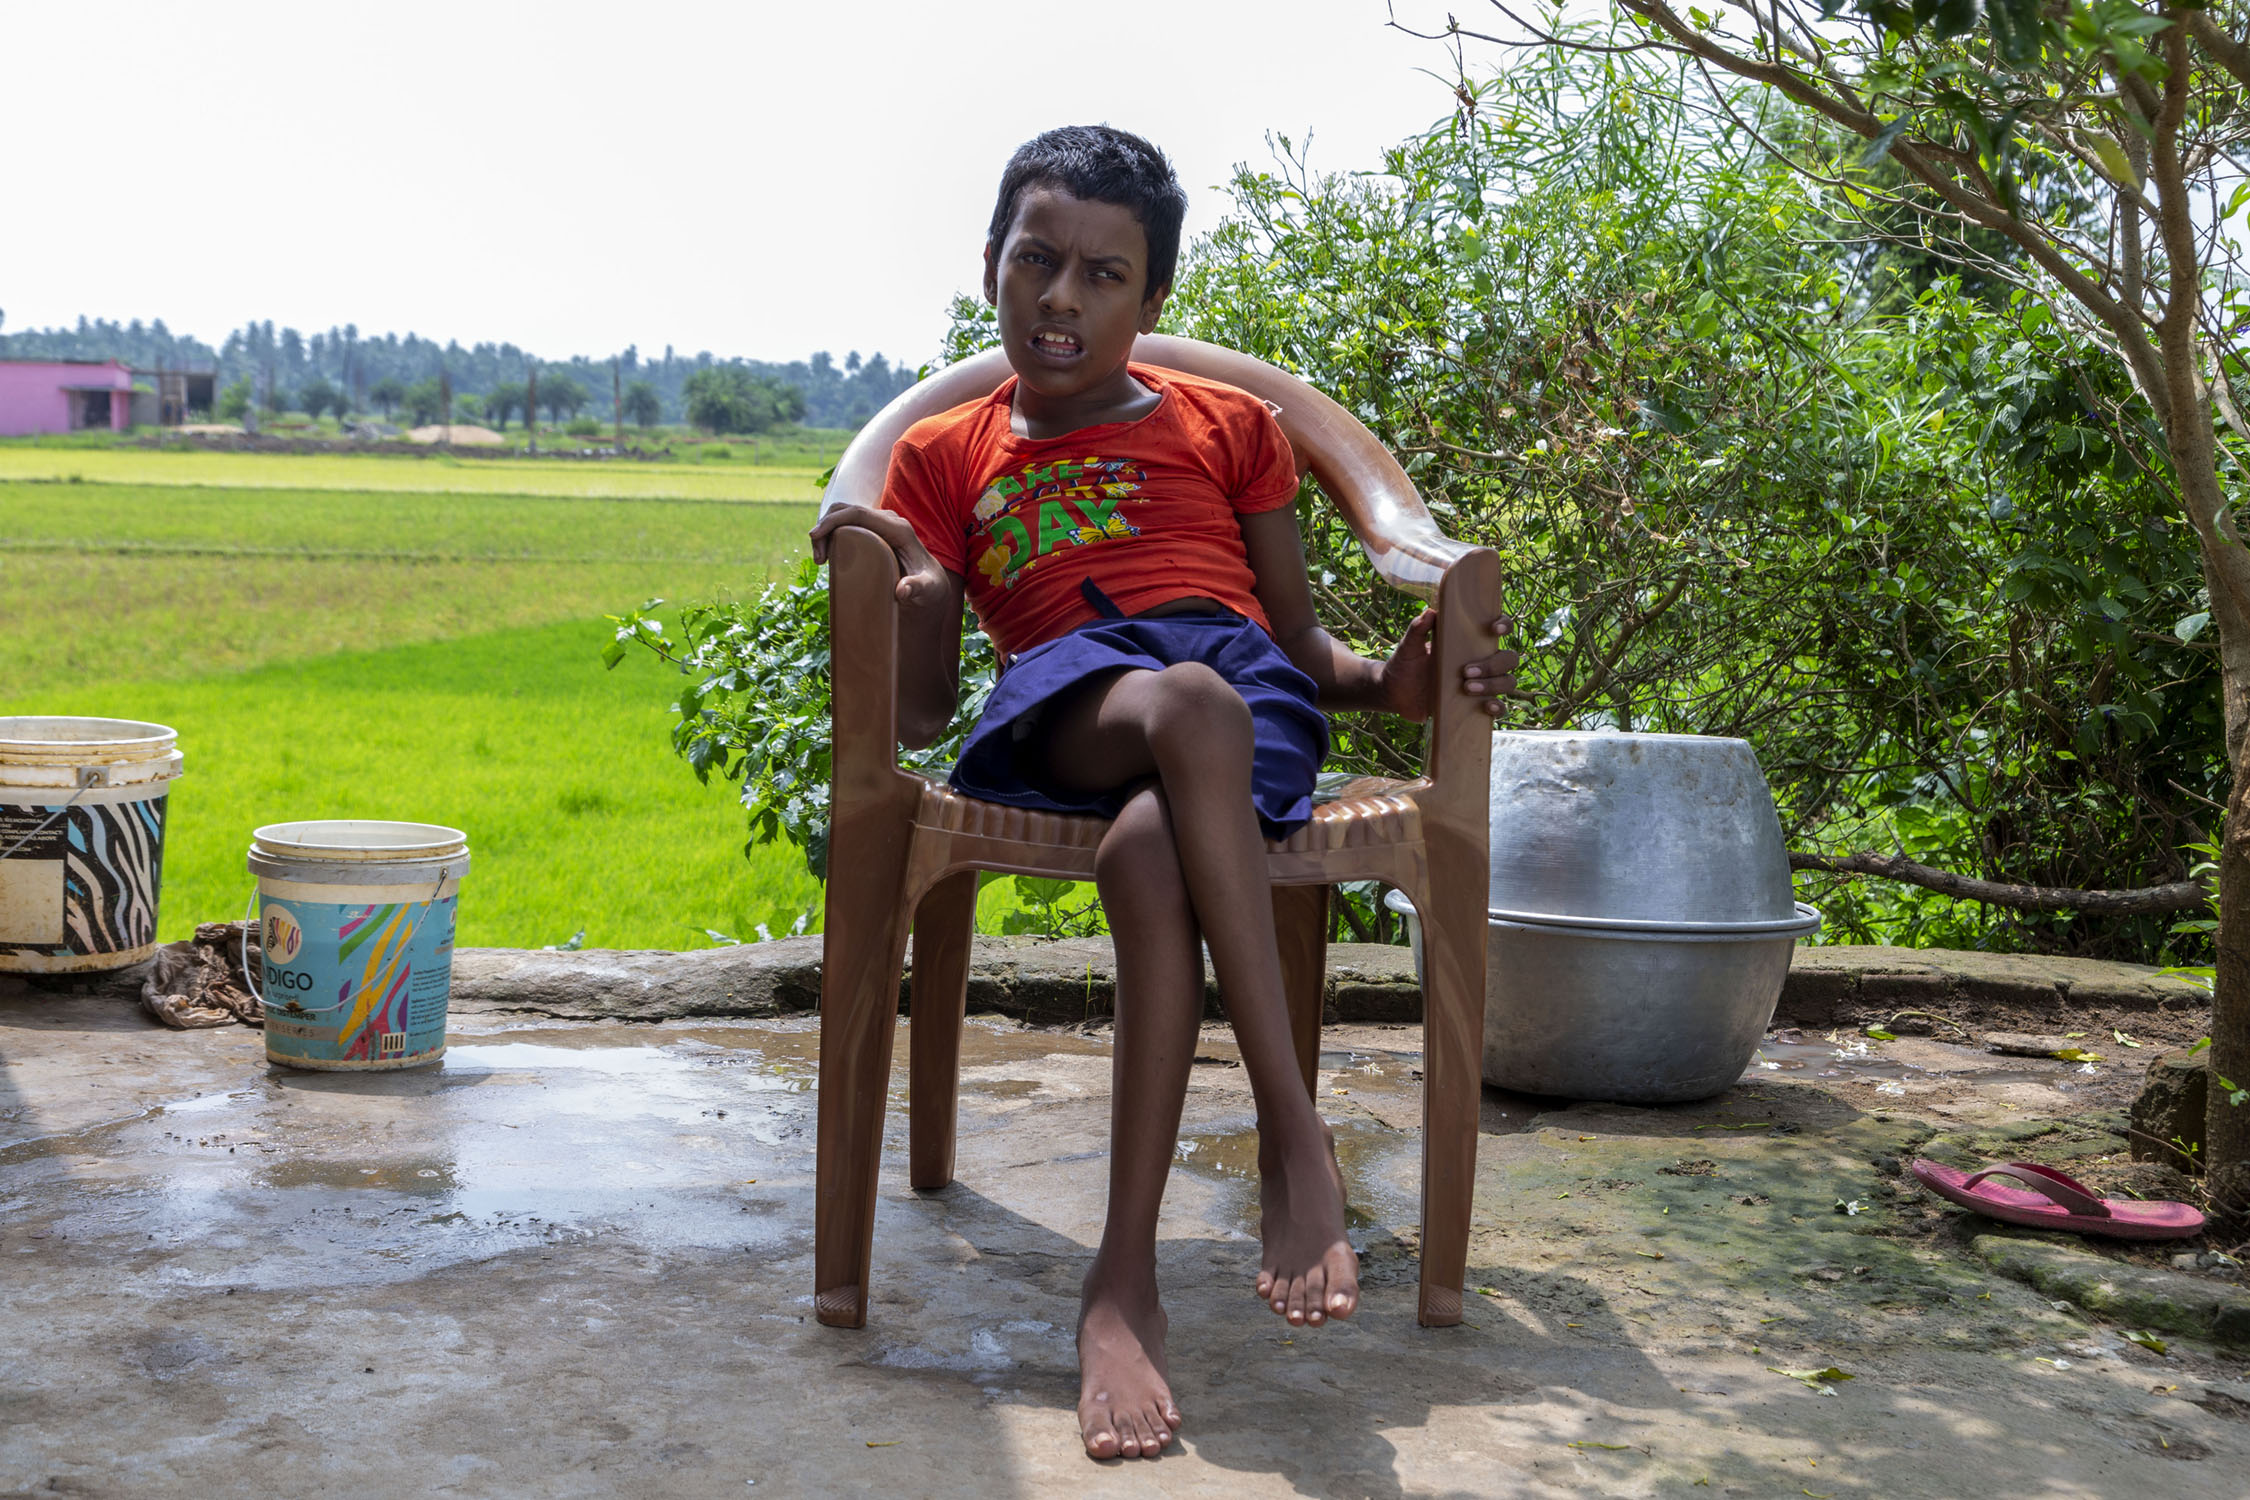 Asis wearing a red T-shirt and purple shorts sits outdoors in a light brown plastic chair. Paddy fields and a small tree are in the background. There are two plastic buckets to the left of the chair. To the right there are two large aluminium vessels, one placed upside down on top of the other to cover it.